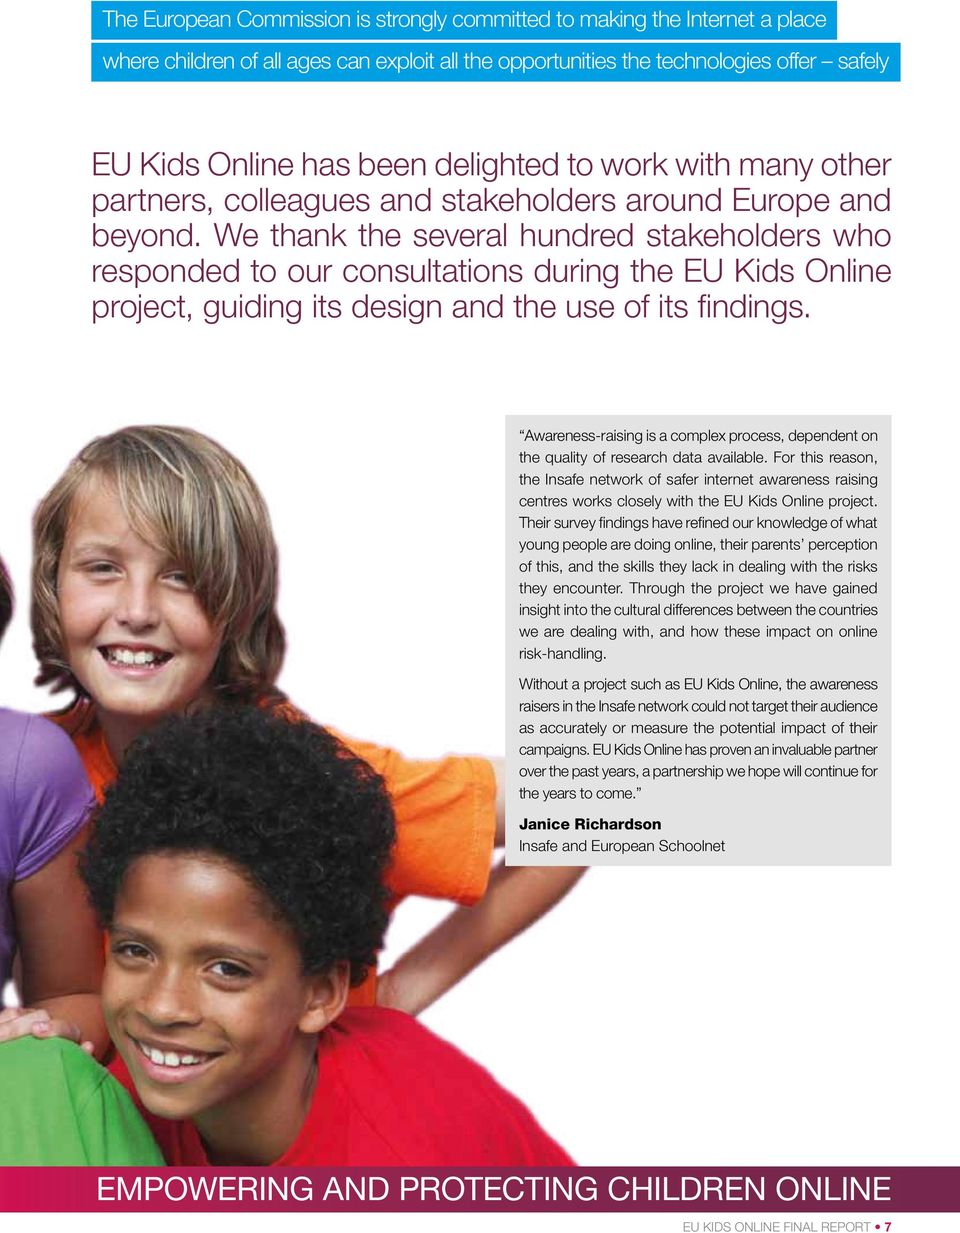 We thank the several hundred stakeholders who responded to our consultations during the EU Kids Online project, guiding its design and the use of its findings.